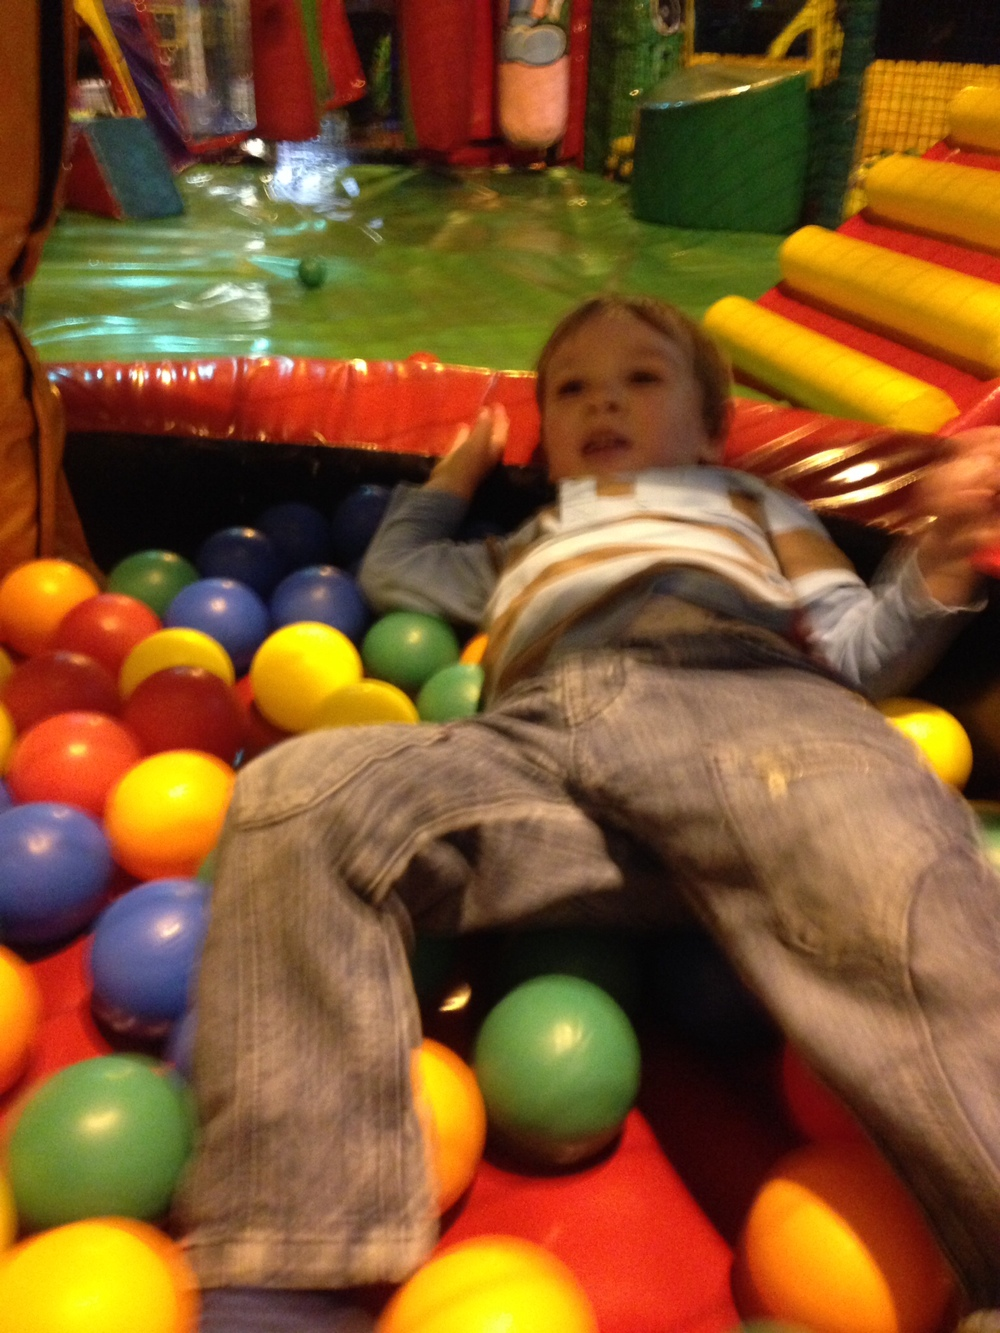 Loving the ball pit